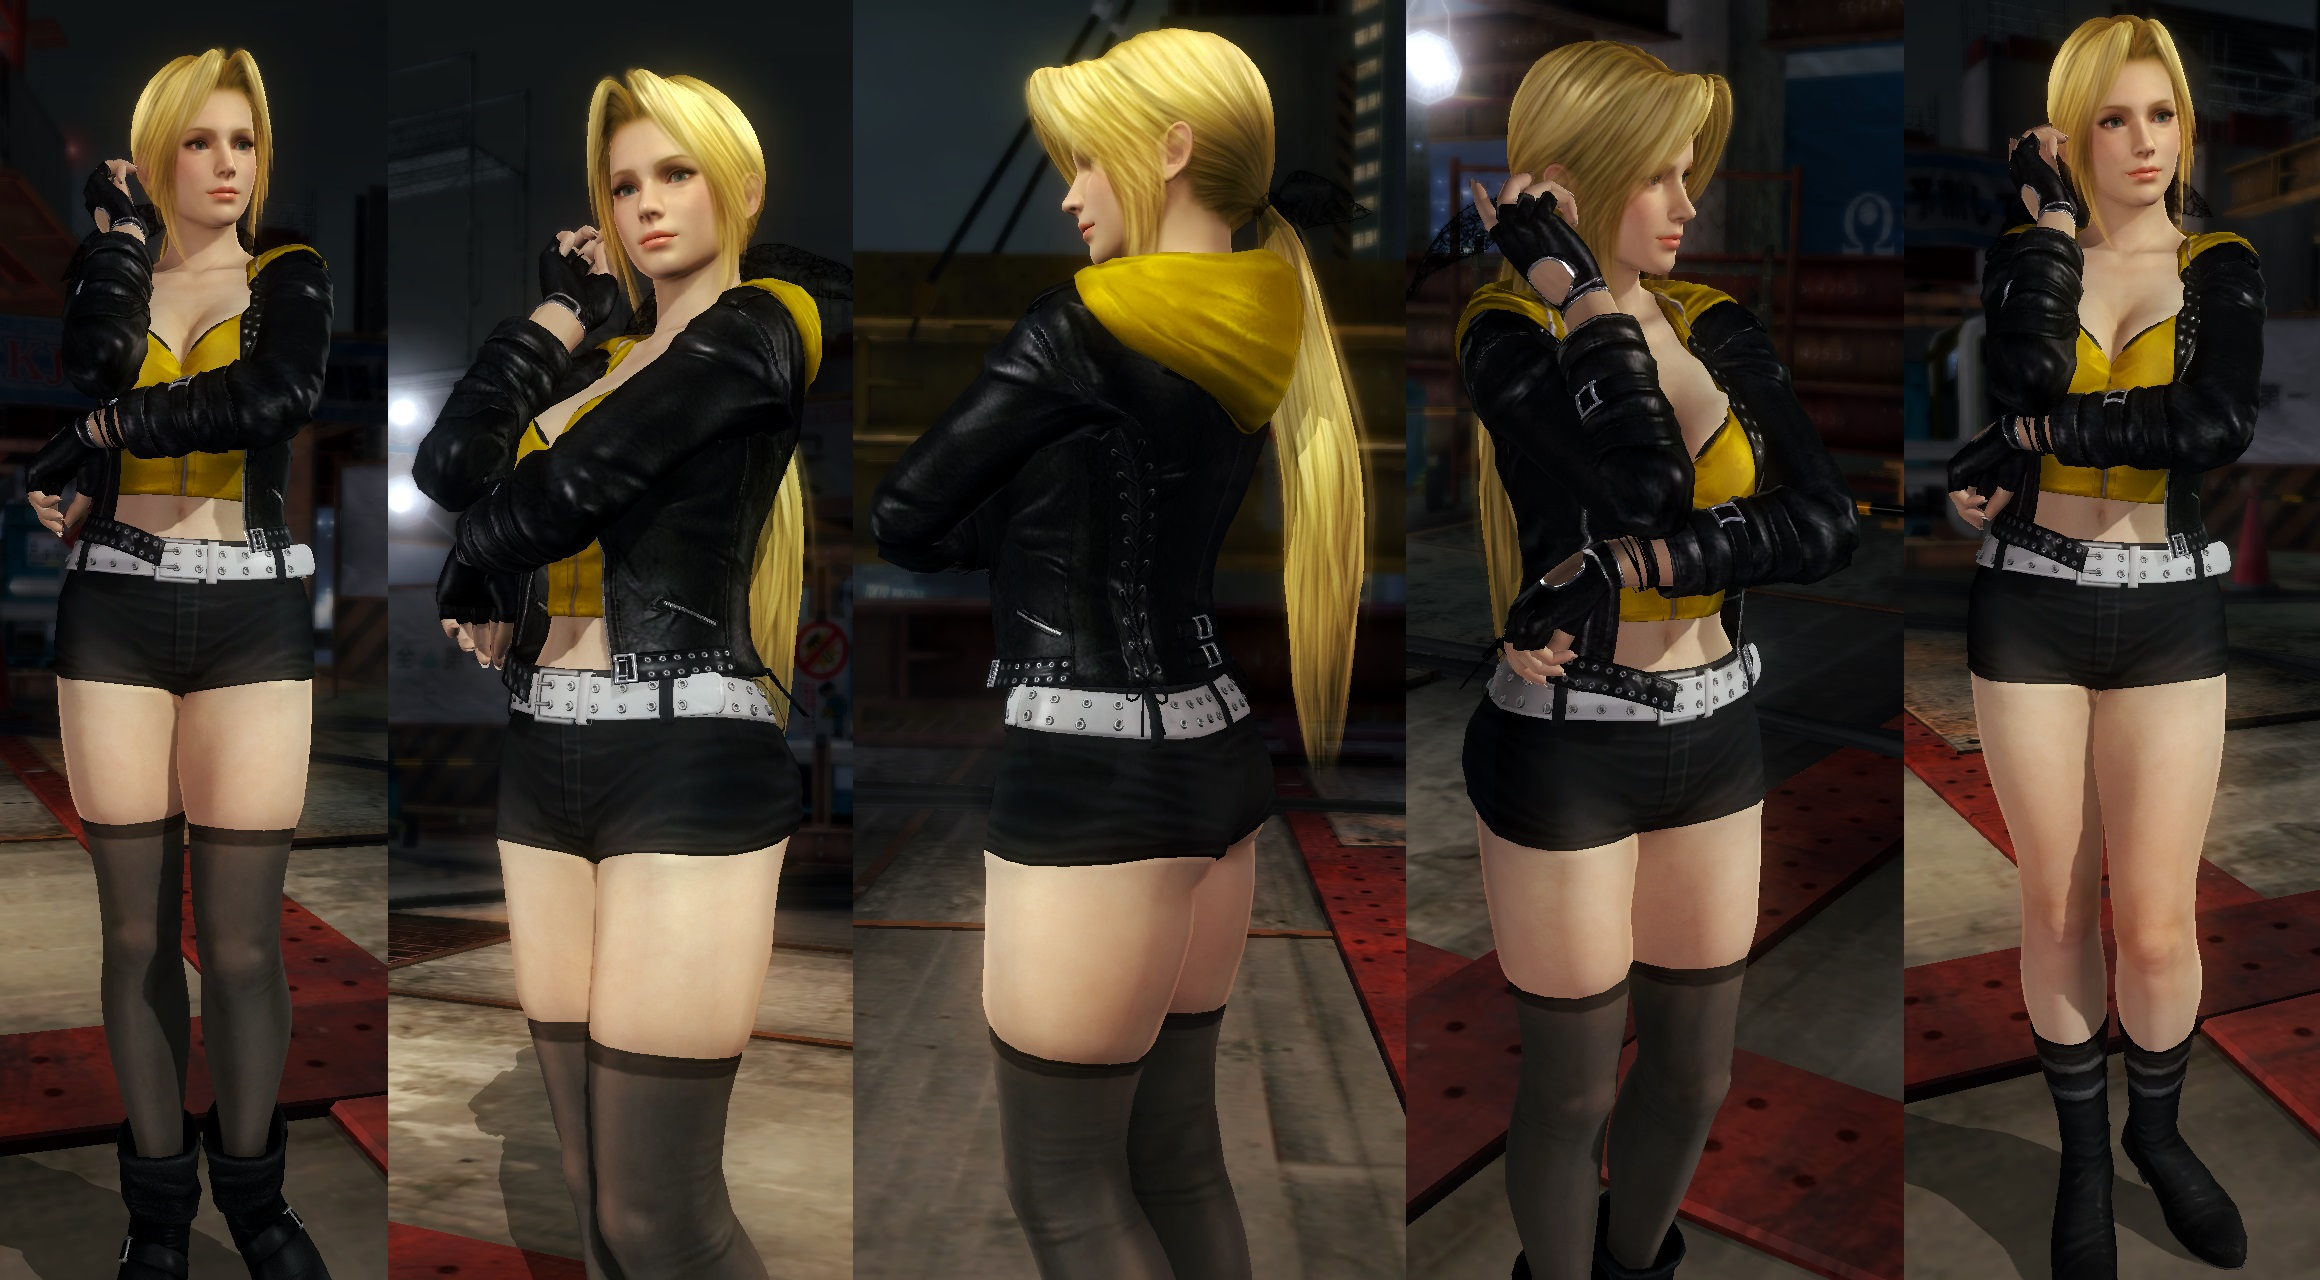 Helena hotpants jacket by funnybunny666